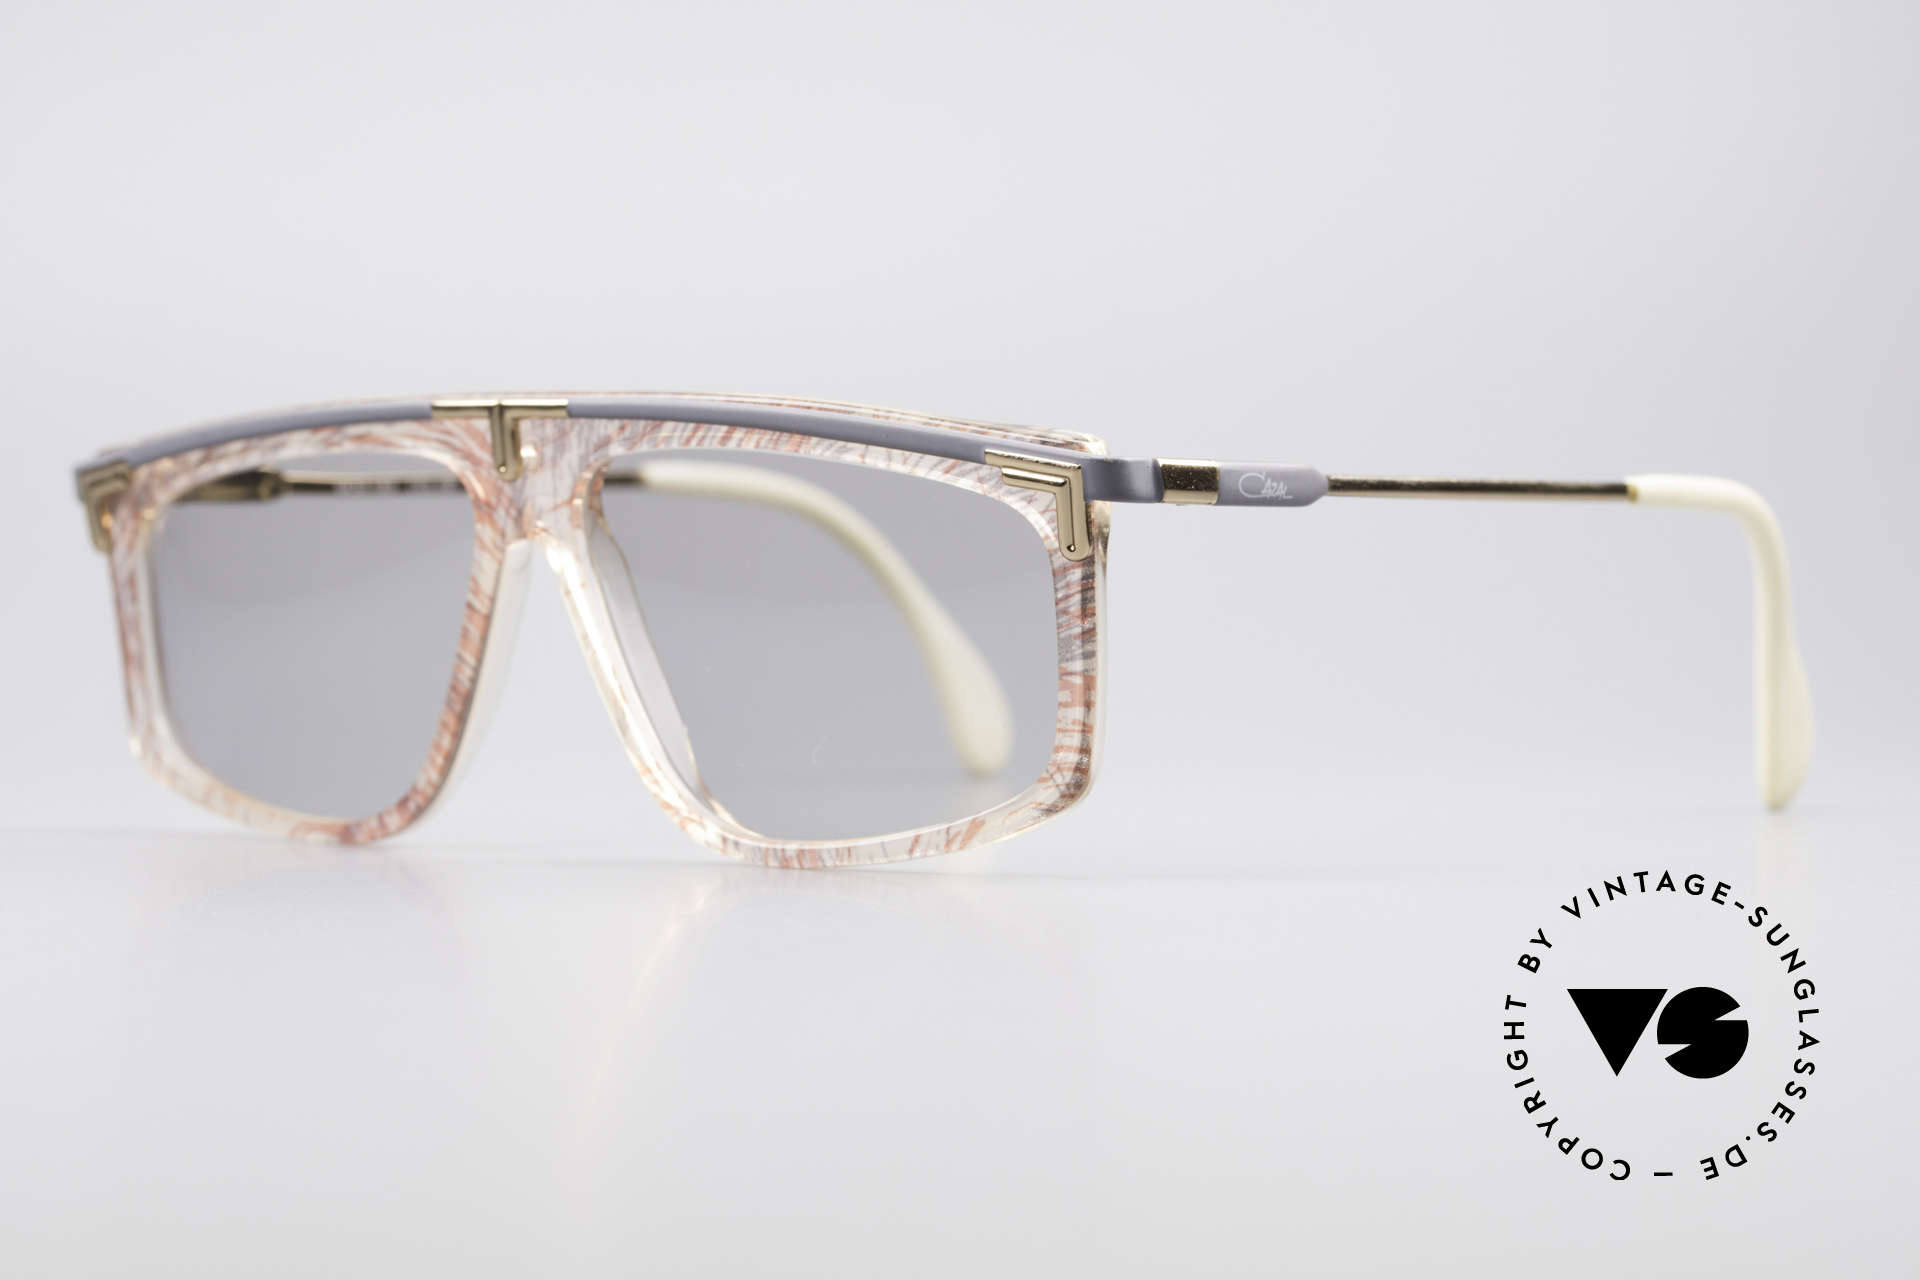 Cazal 190 Old School Hip Hop 1980's, truly vintage (WEST GERMANY) and NO RETRO shades, Made for Men and Women